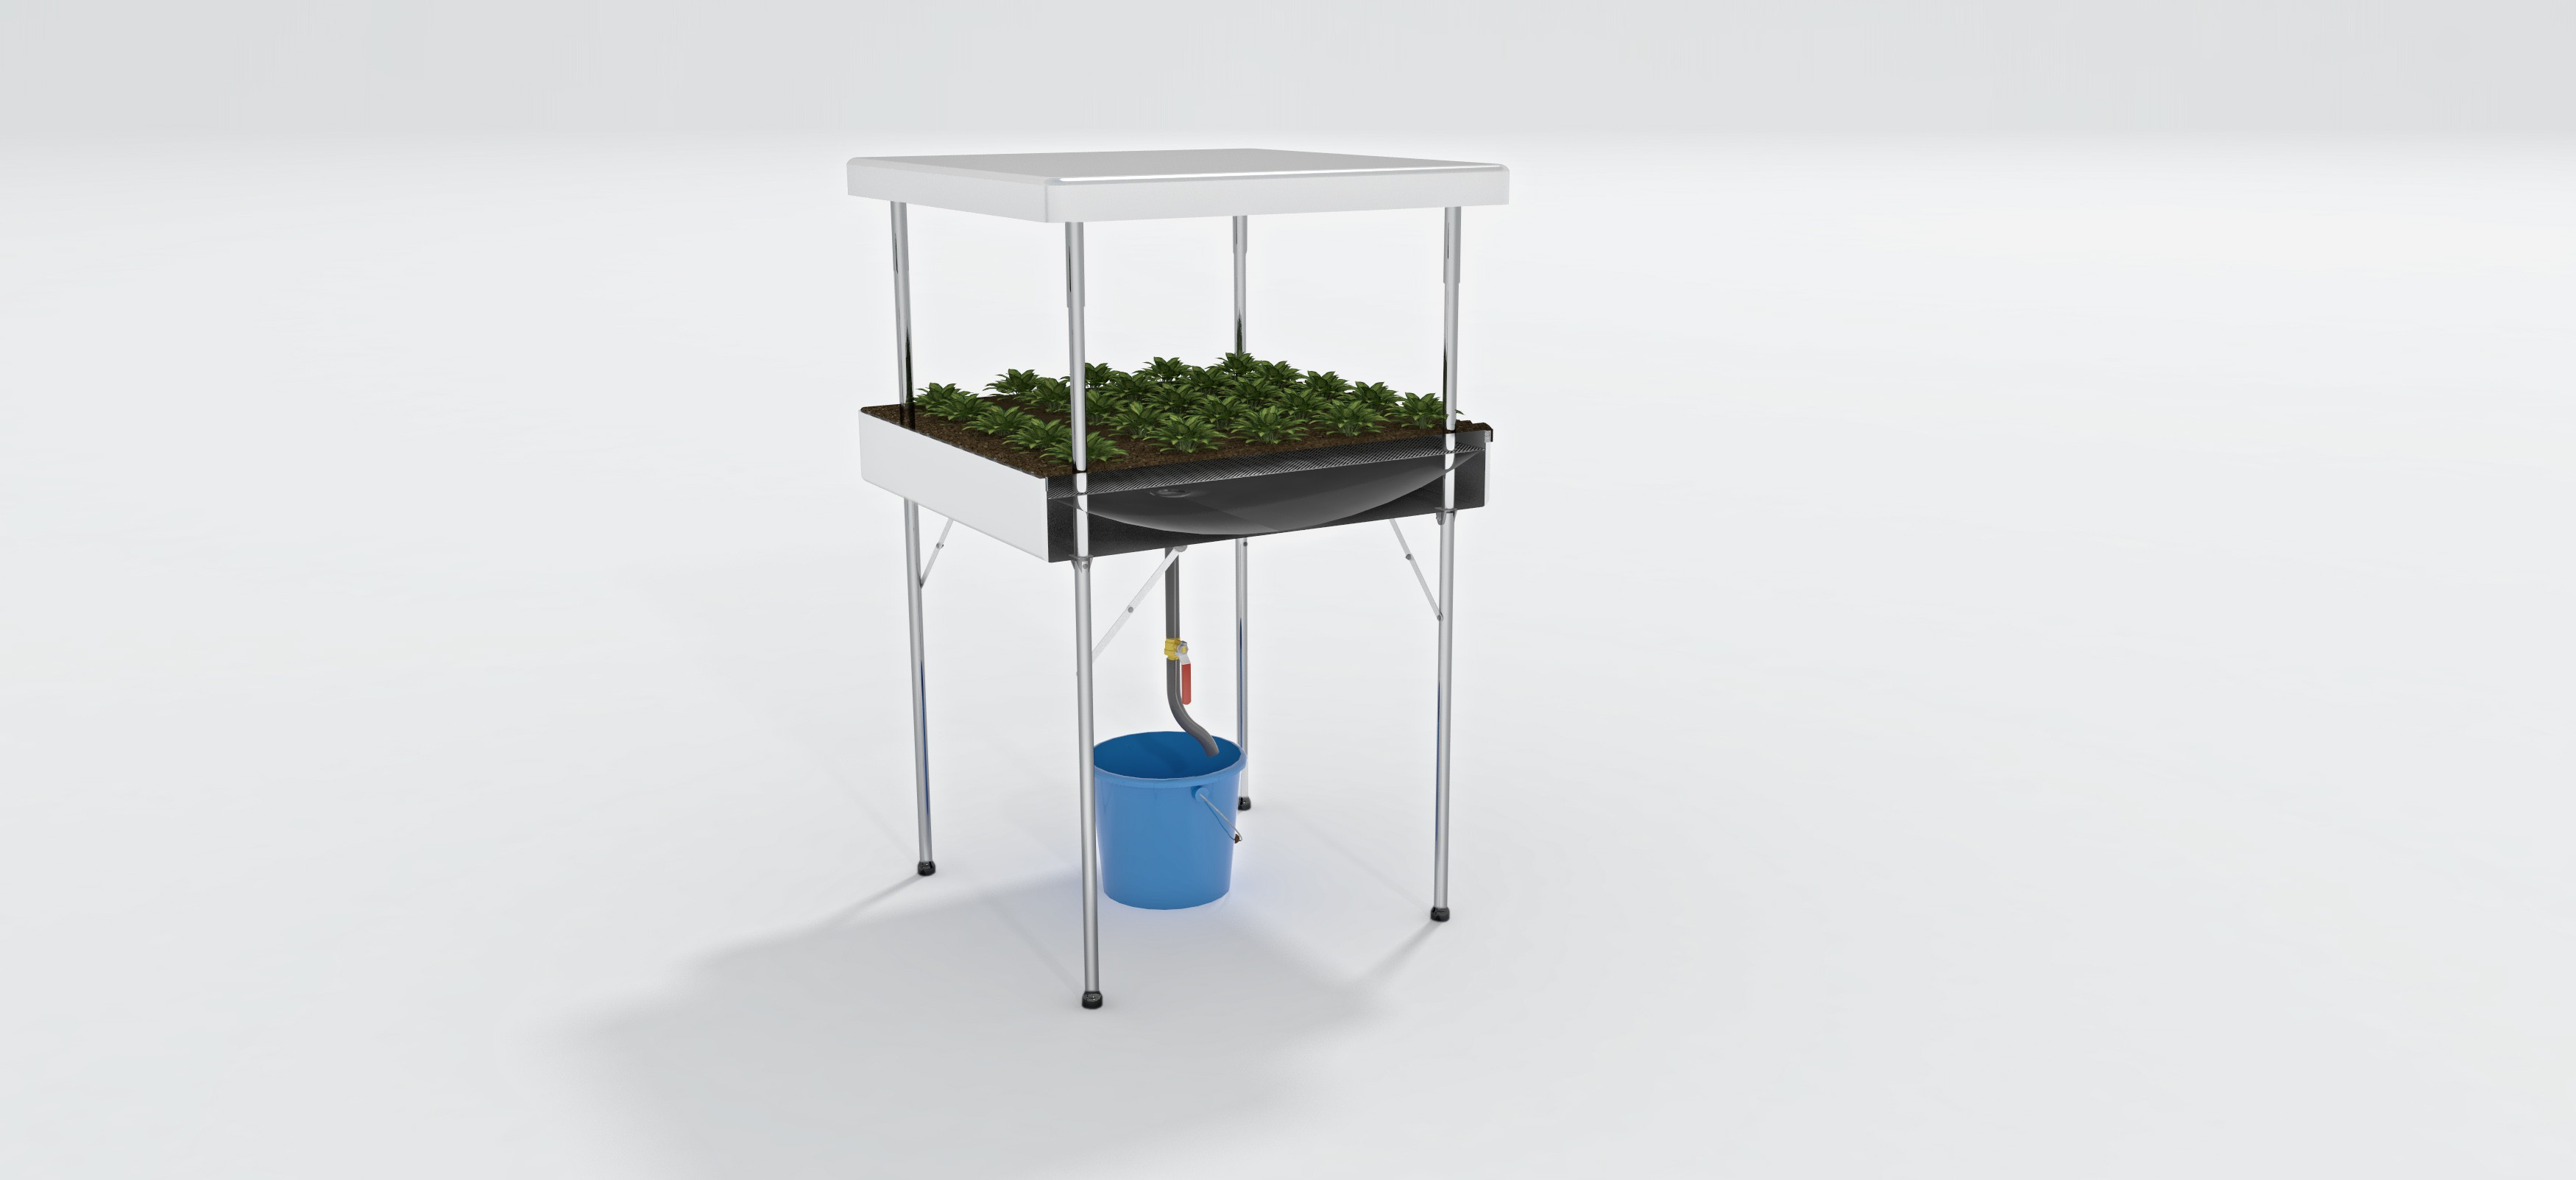 Vegetative Plant Growing Table